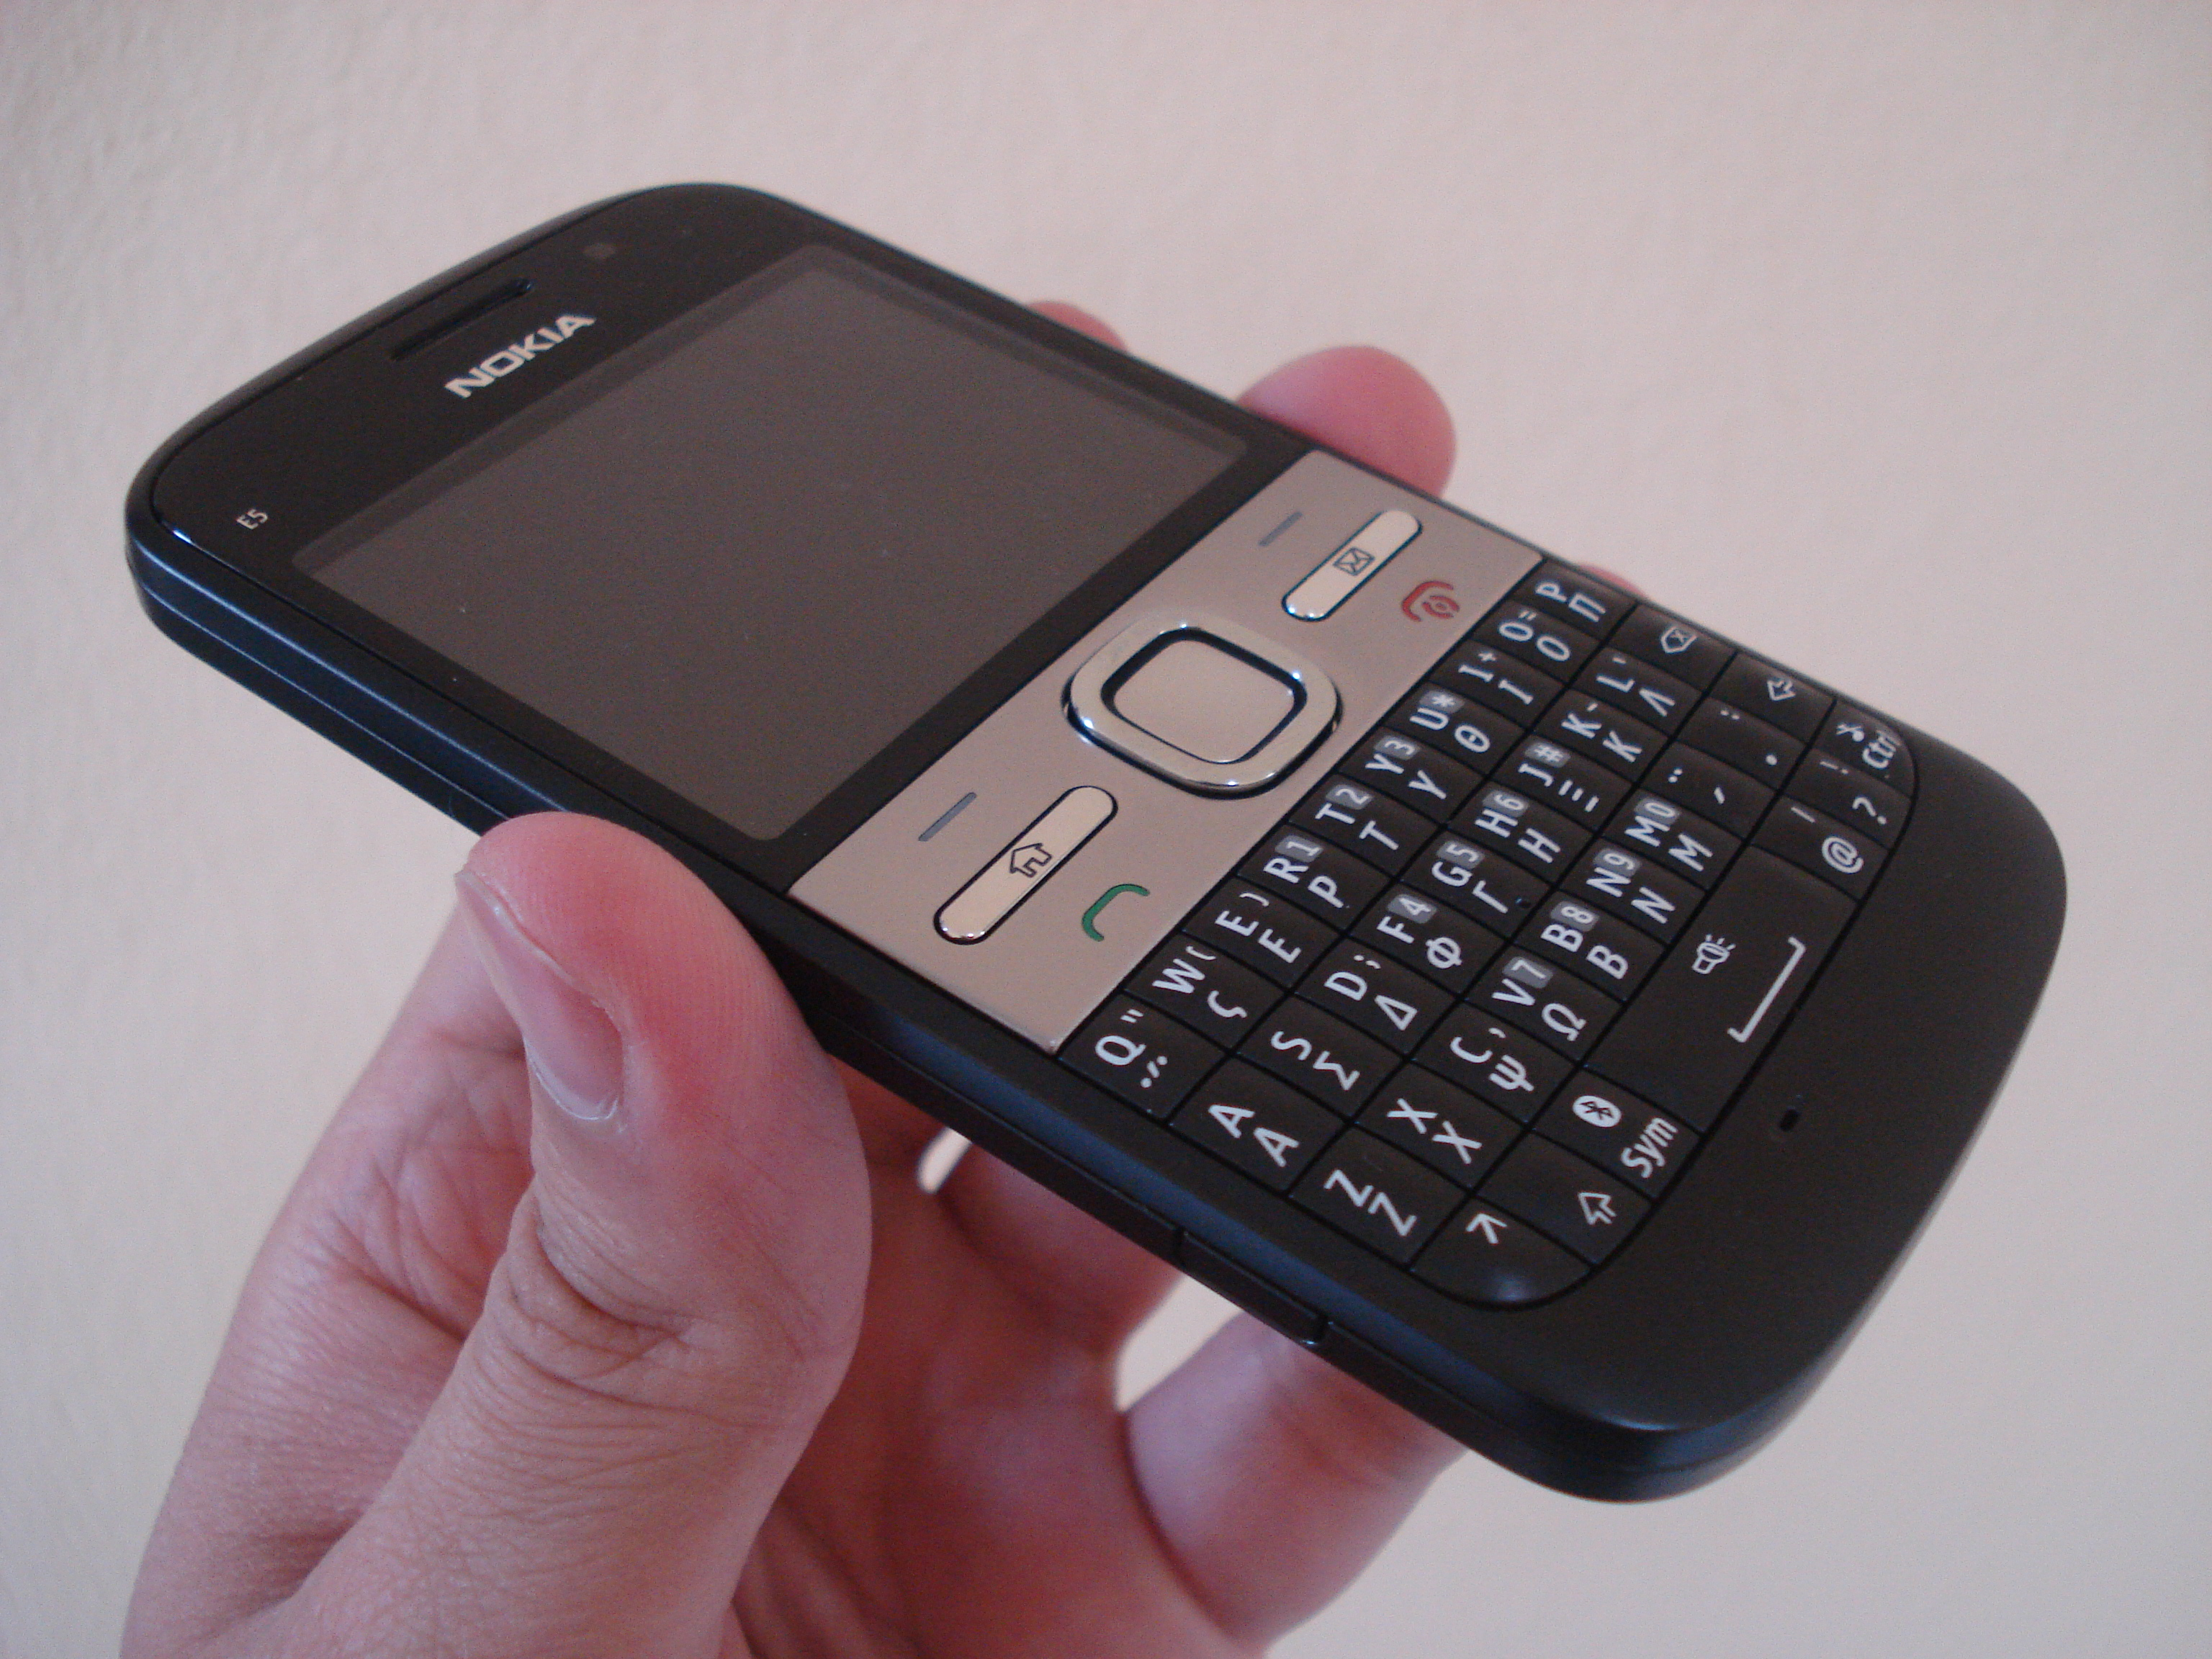 wechat for nokia e5 free download